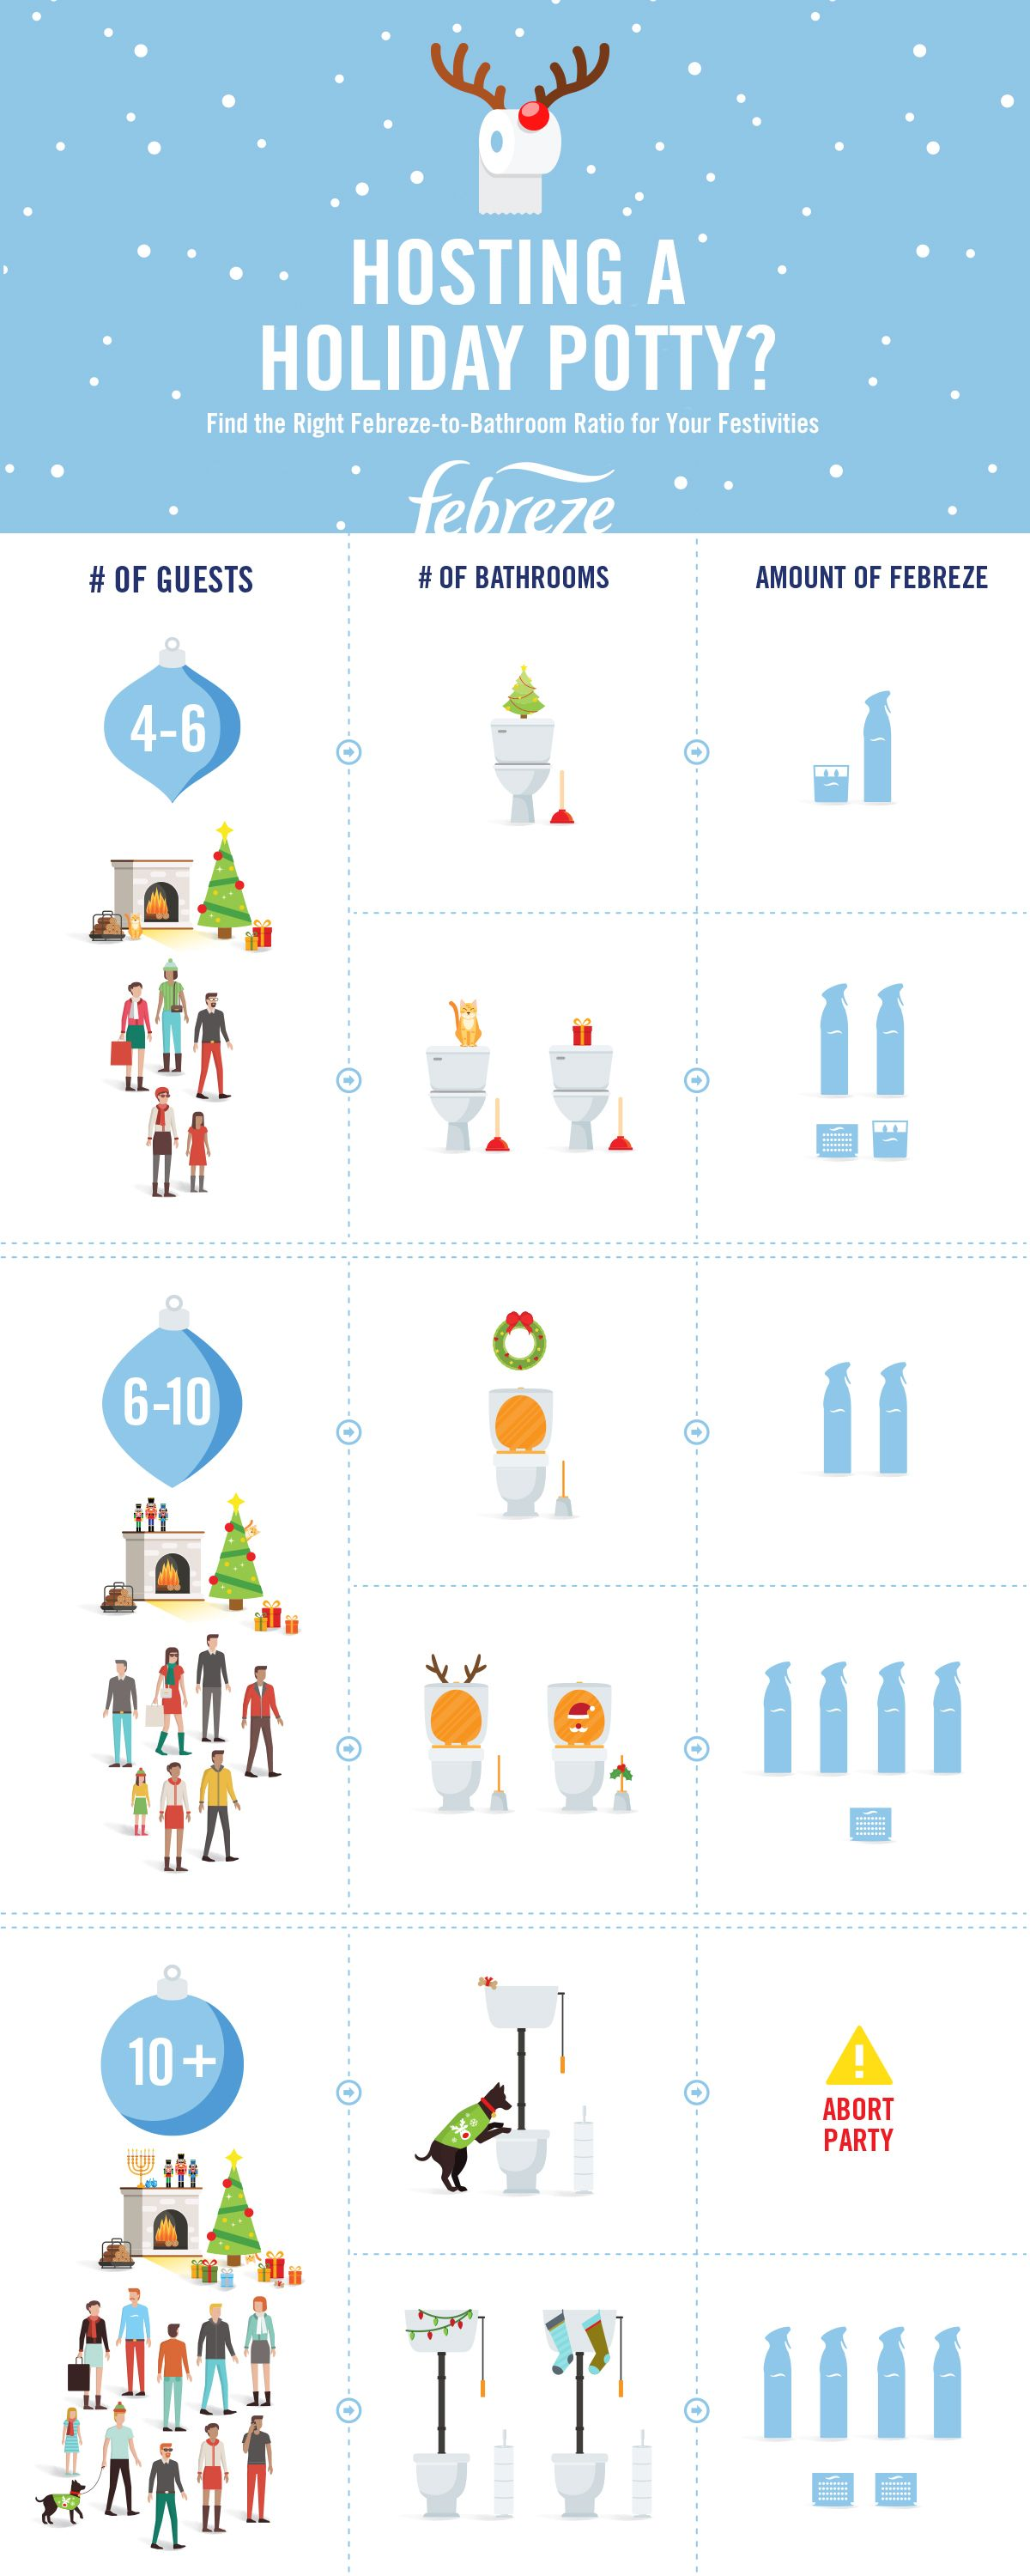 Planning A Holiday Party Don T Forget The Busiest And Stinkiest Room In The House The Bathroom Here S Some Simple Math T Holiday Fun Christmas Fun Holiday